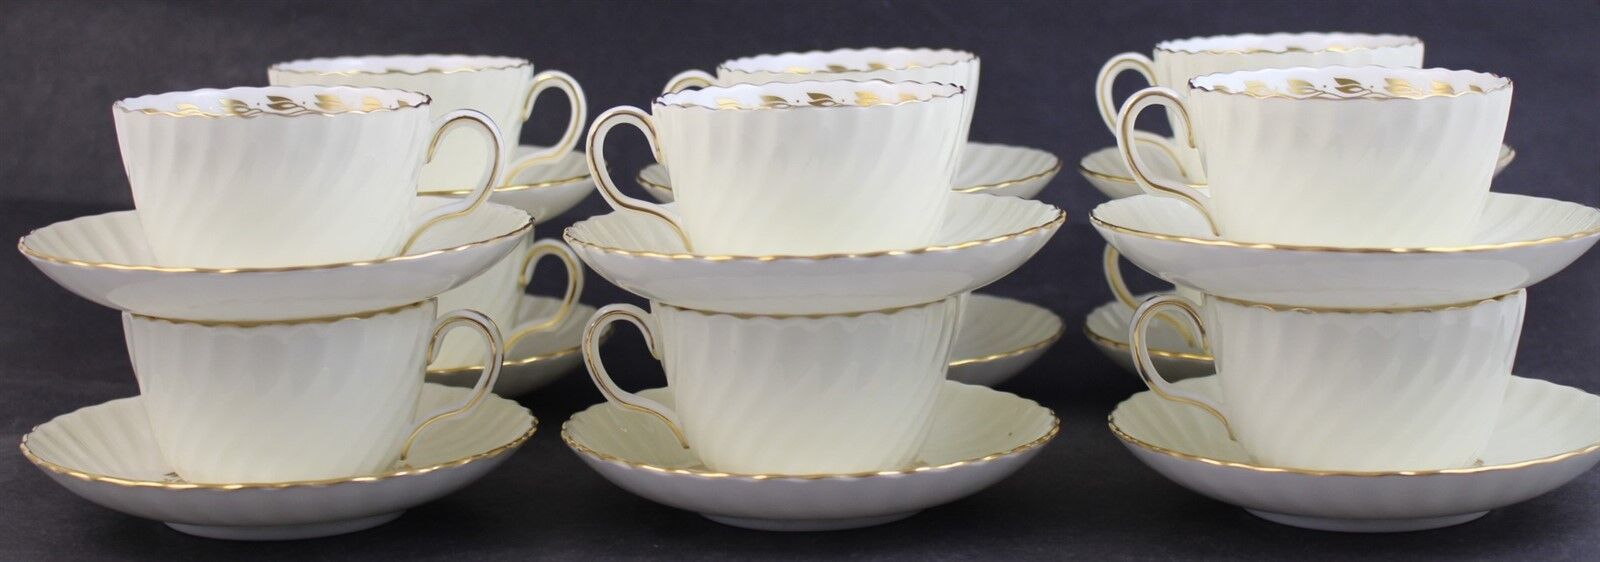 - 2 Minton China Cups and Saucers Cheviot Gold